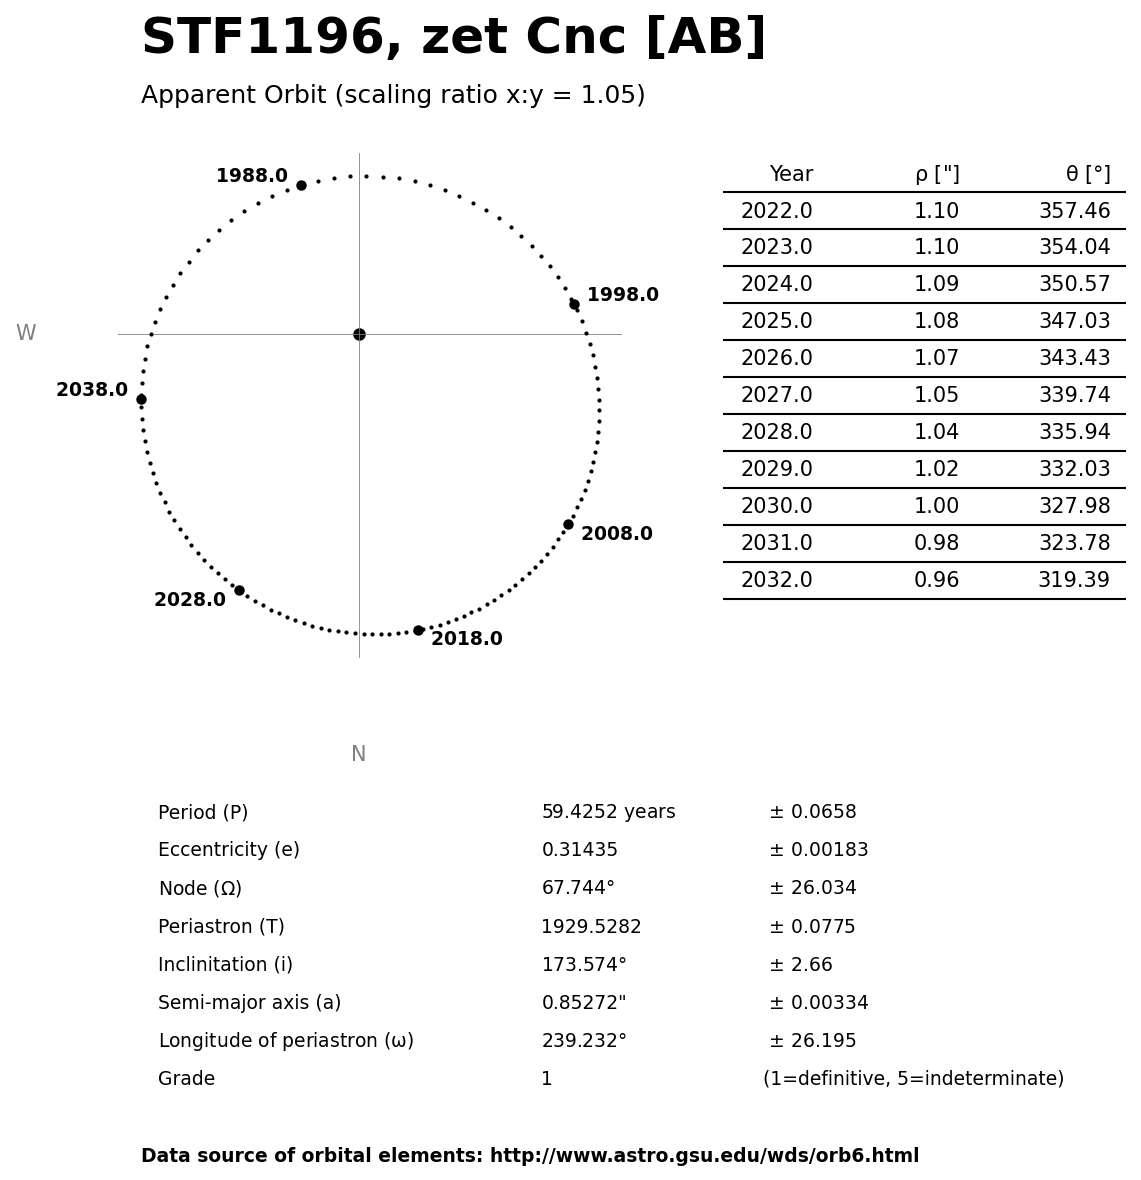 ../images/binary-star-orbits/STF1196-AB-orbit.jpg